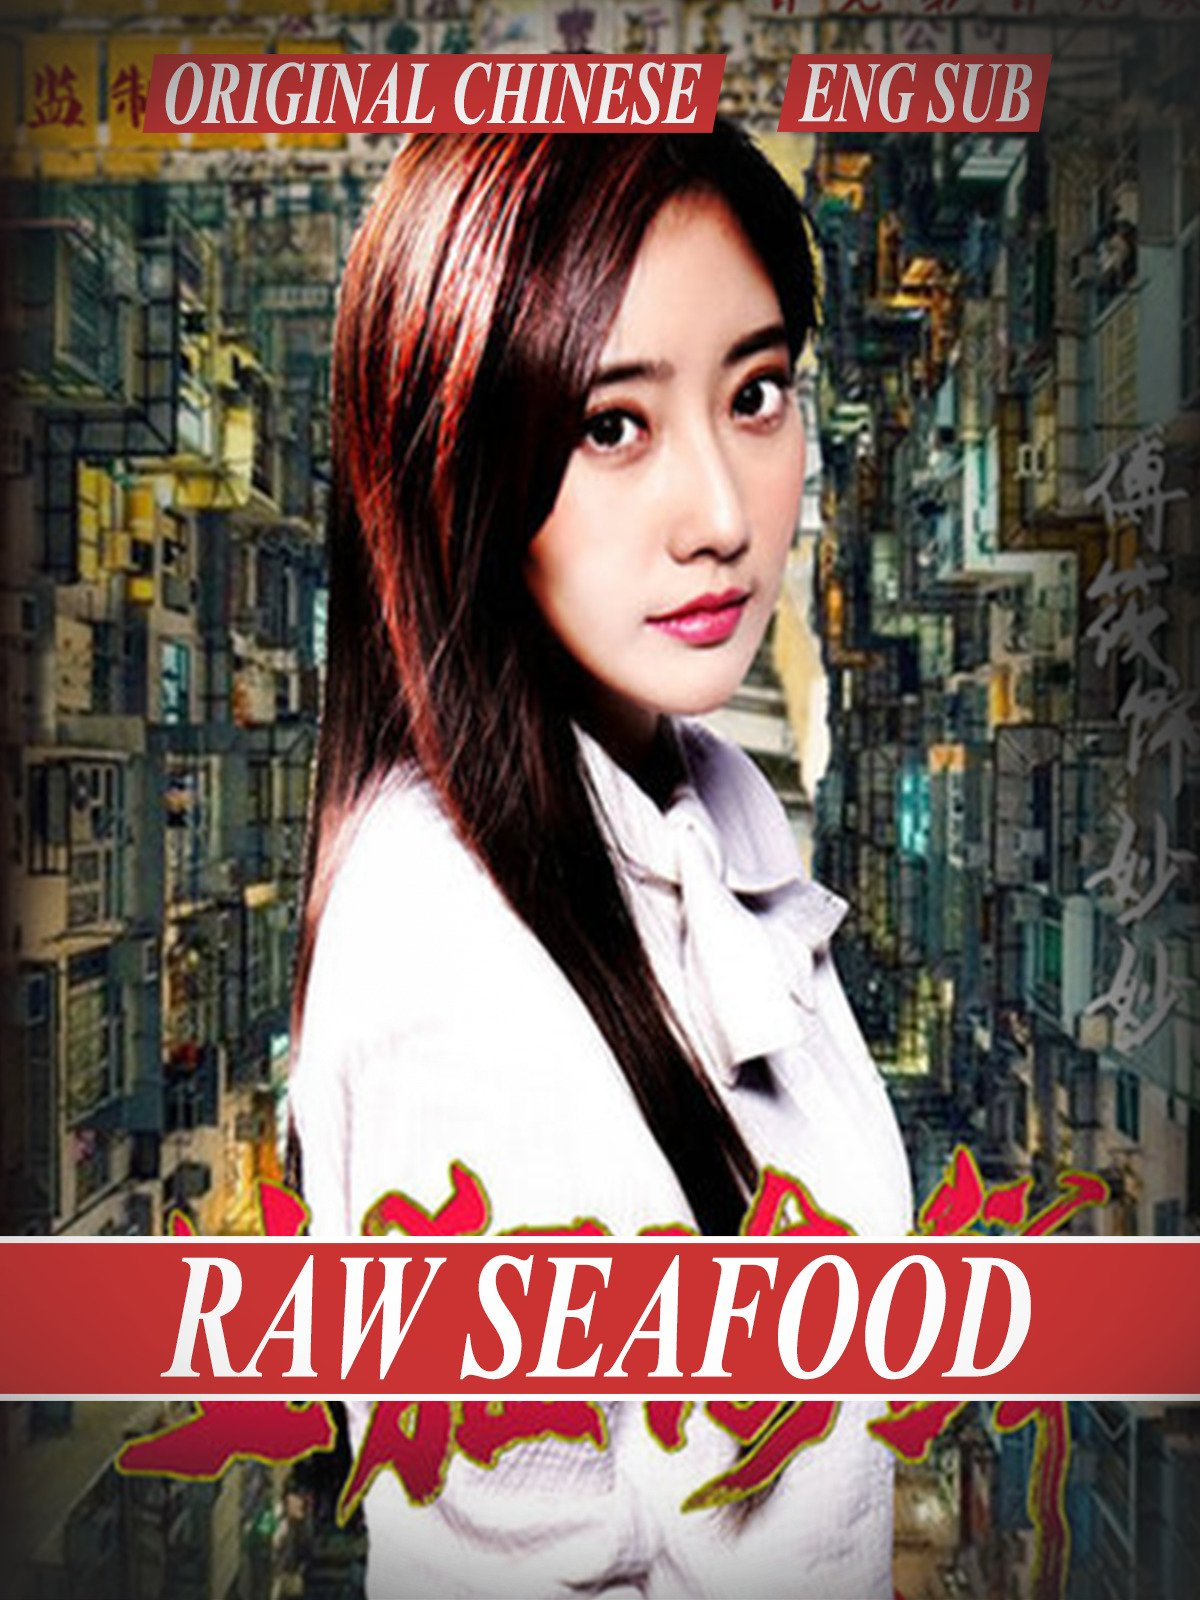 Raw Seafood [Eng Sub] original Chinese